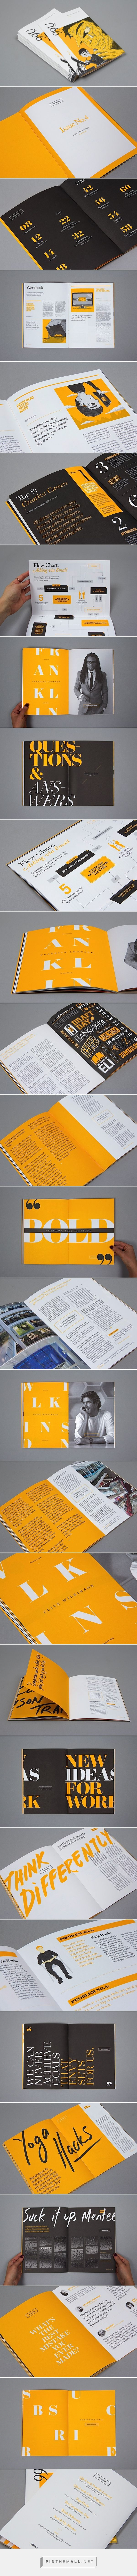 Strong colour scheme throughout Editorial Design Inspiration: 99U Quarterly Mag No.4 | Abduzeedo Design Inspiration